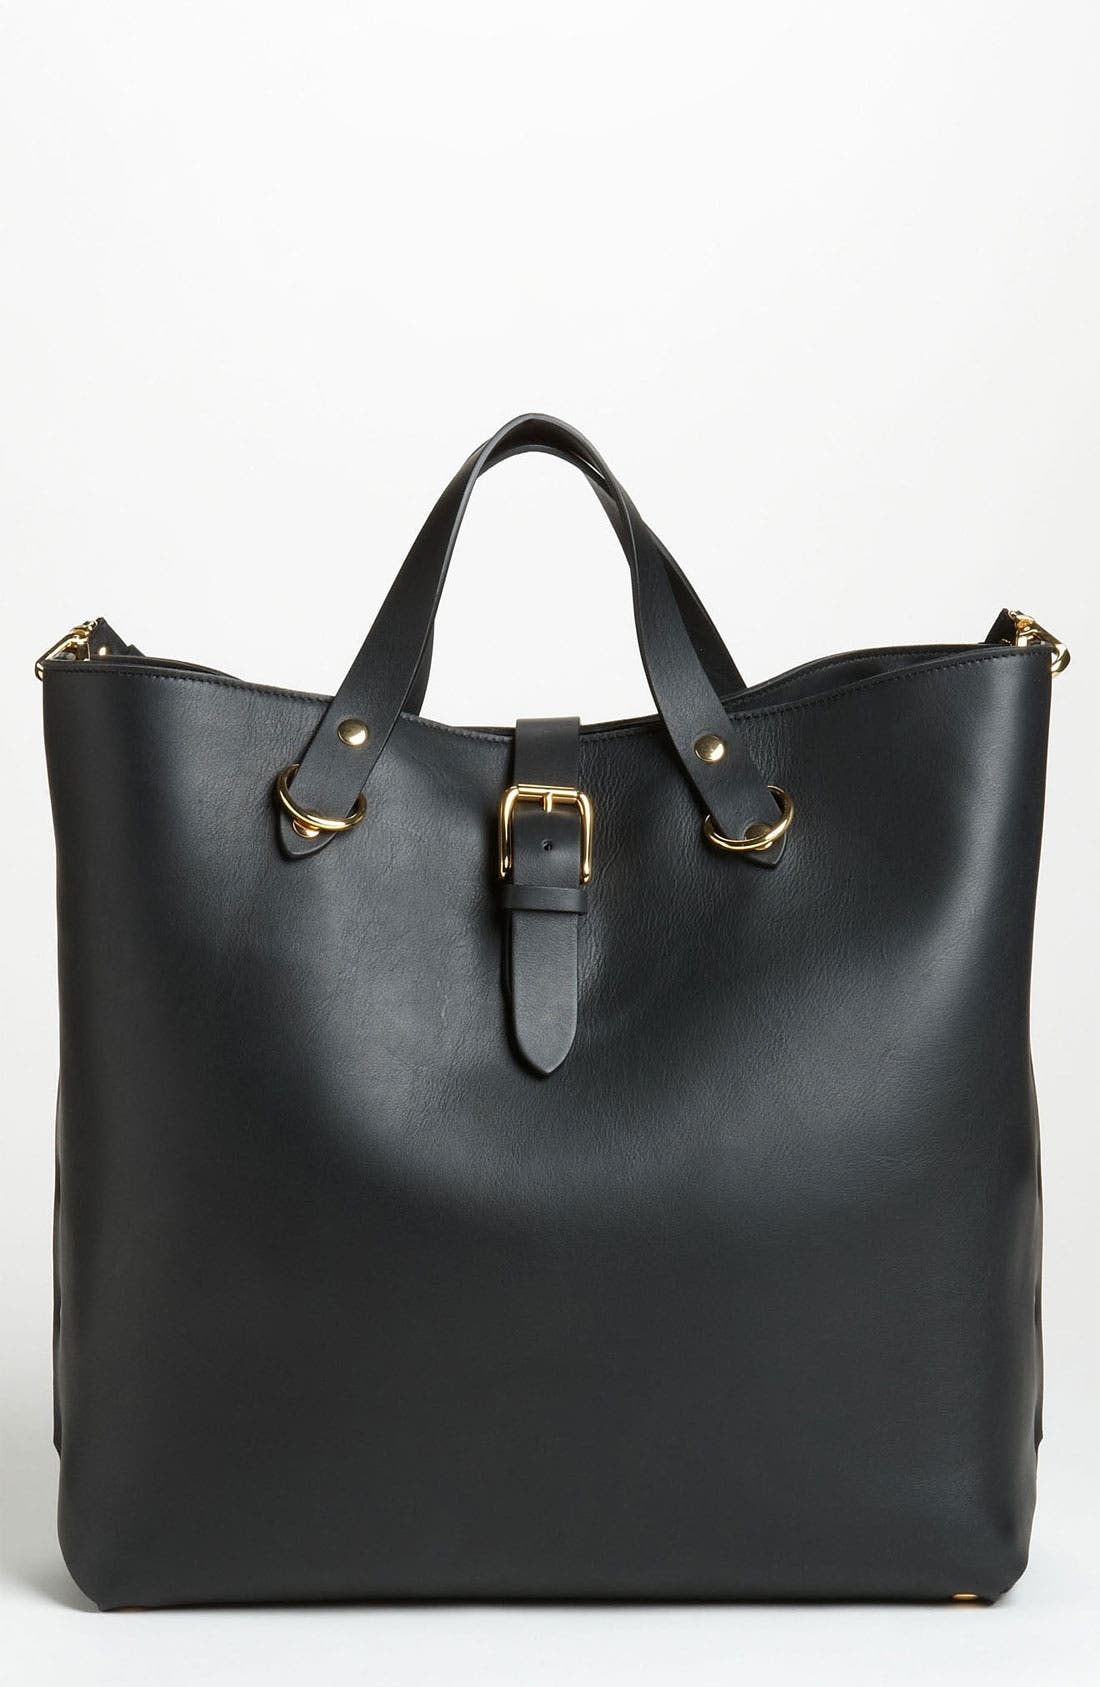 Alternate Image 1 Selected - Marni 'Large' Studded Leather Tote